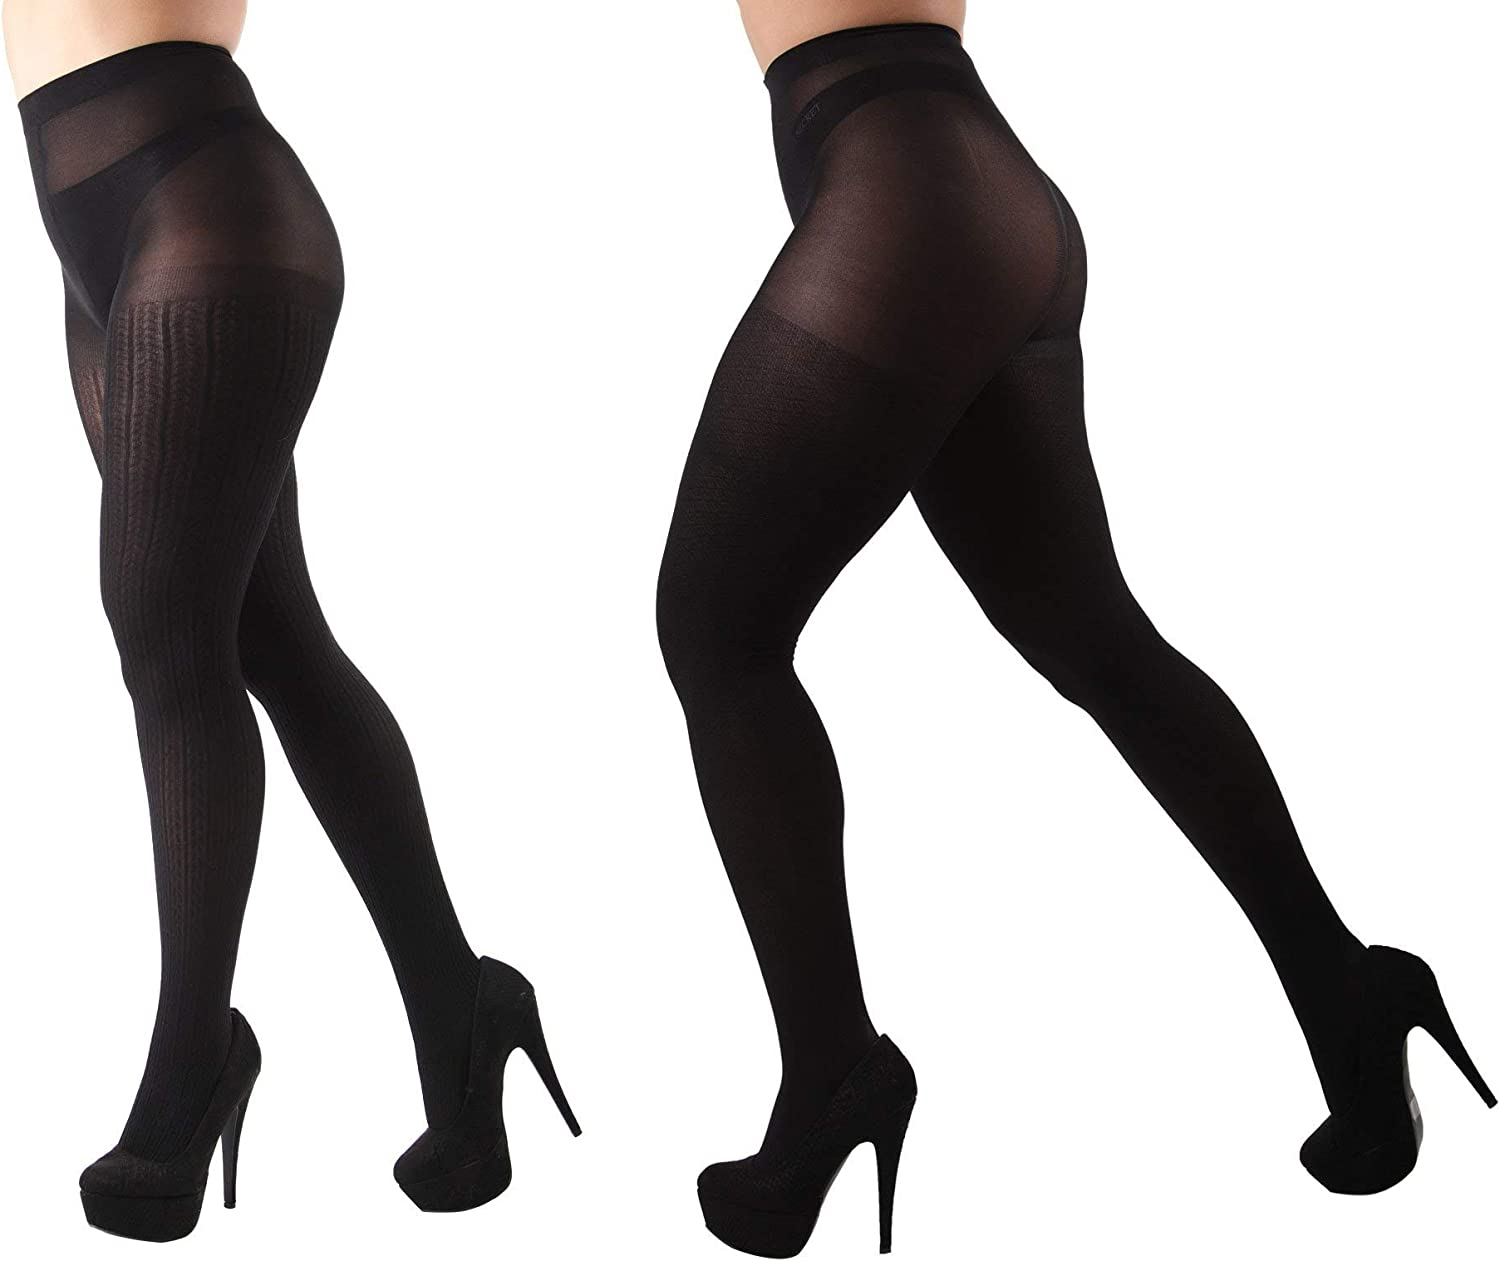 MeMoi Braided Chain/Solid Control Top Tights 2 Pack